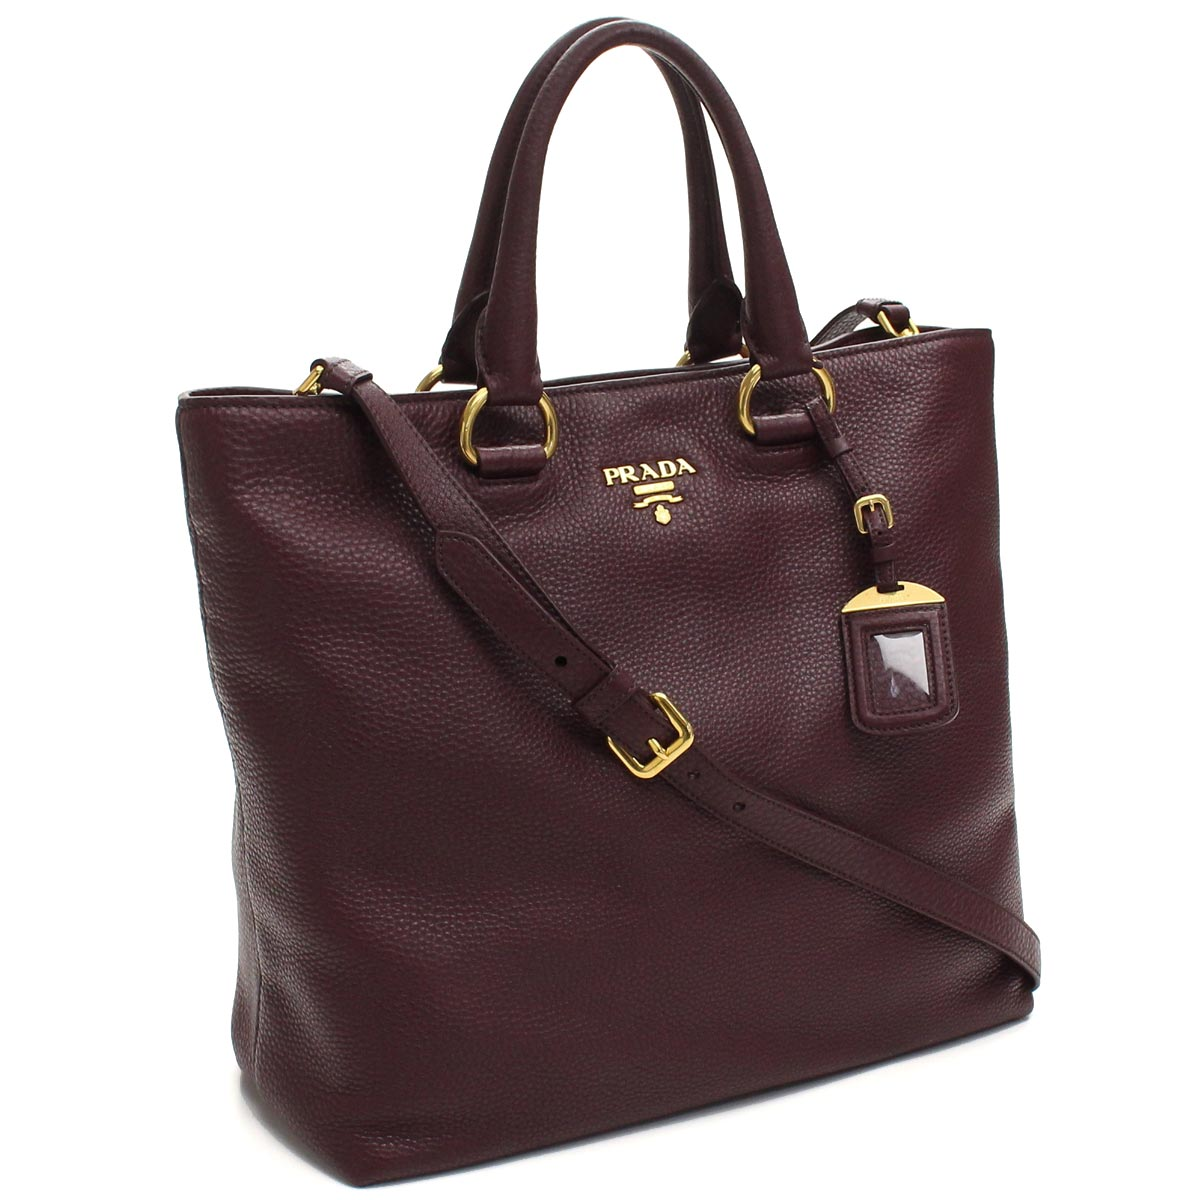 266c8f310b5f Bighit The total brand wholesale  Prada outlet PRADA (OUTLET) tote bag  BN2865-O-UWL-F0403 GRANATO Bordeaux( taxfree send by EMS authentic A brand  new item ) ...